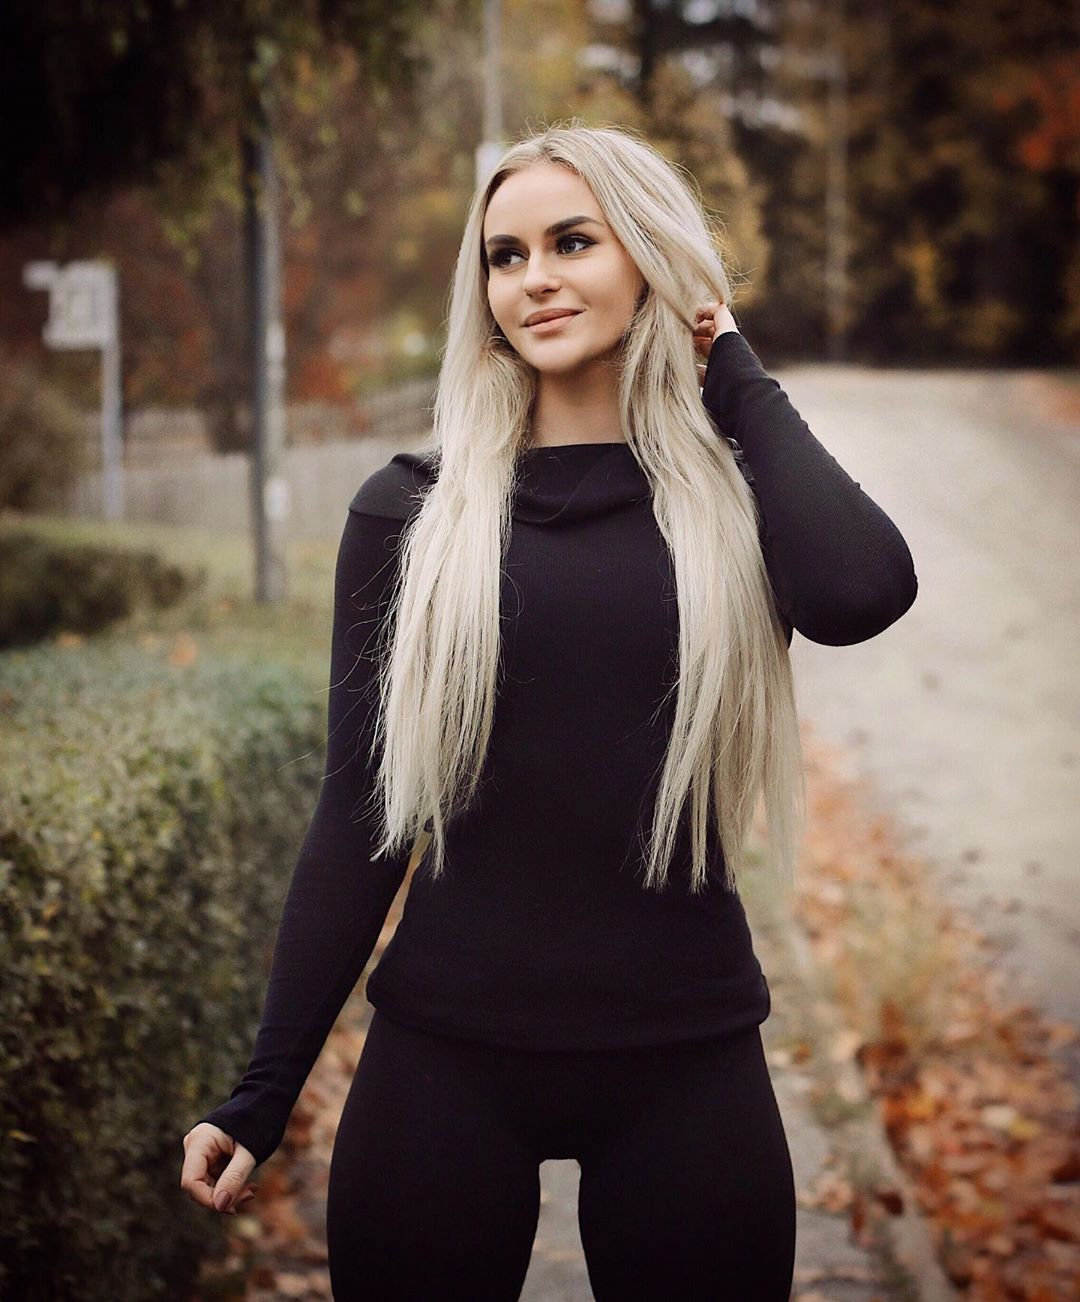 Anna-Nystrom-Wallpapers-Insta-Fit-Bio-2